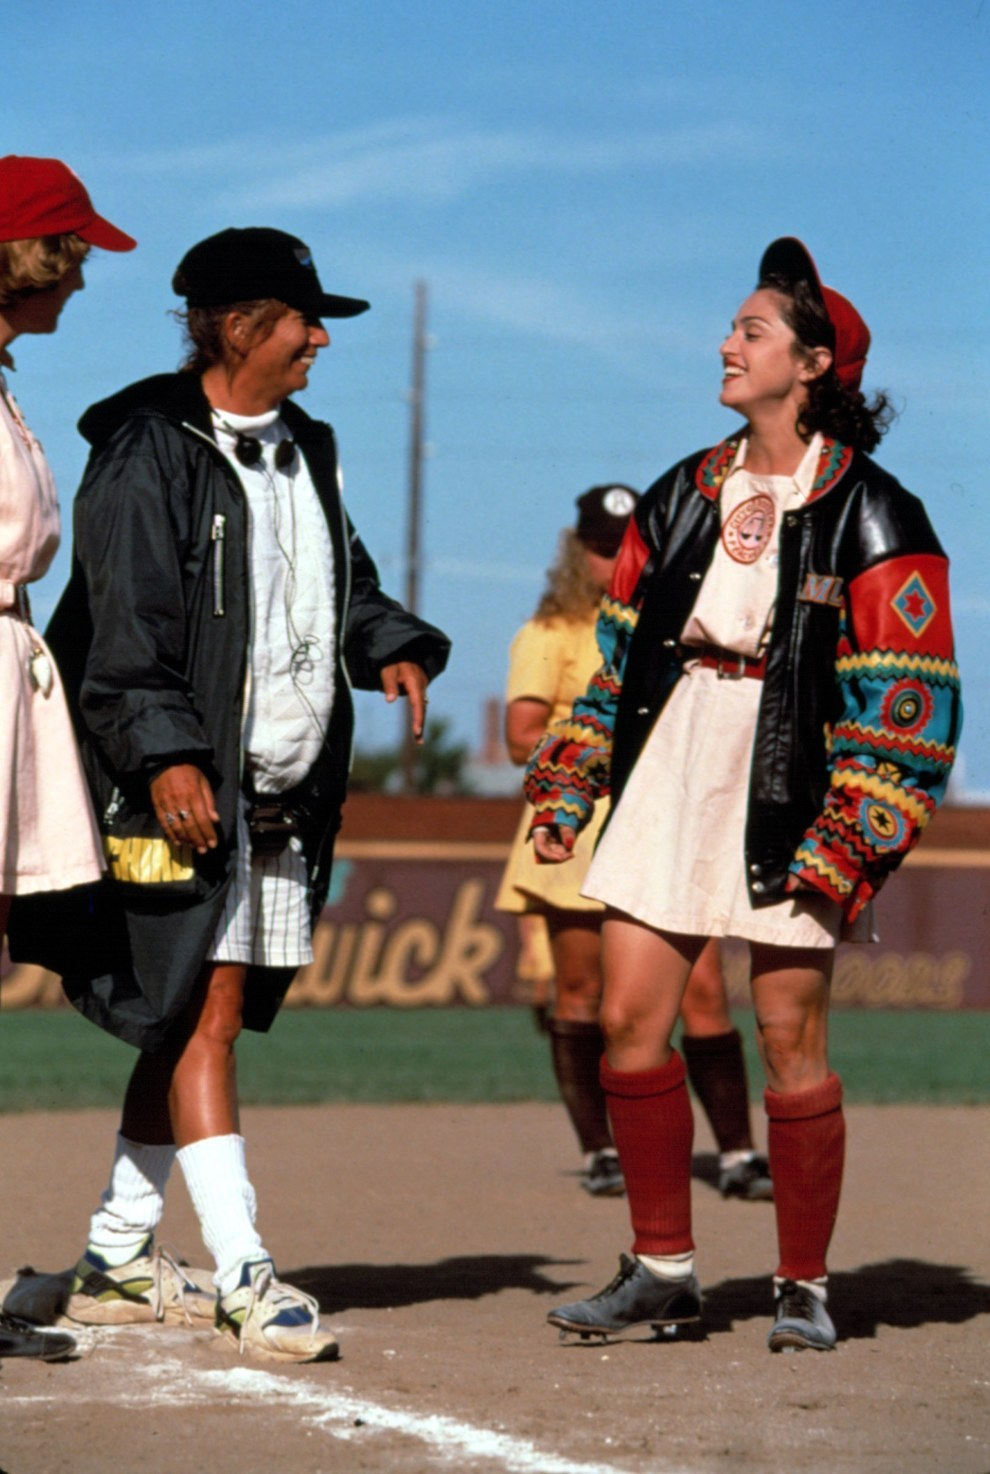 El director Penny Marshall y Madonna, A League of Their Own.